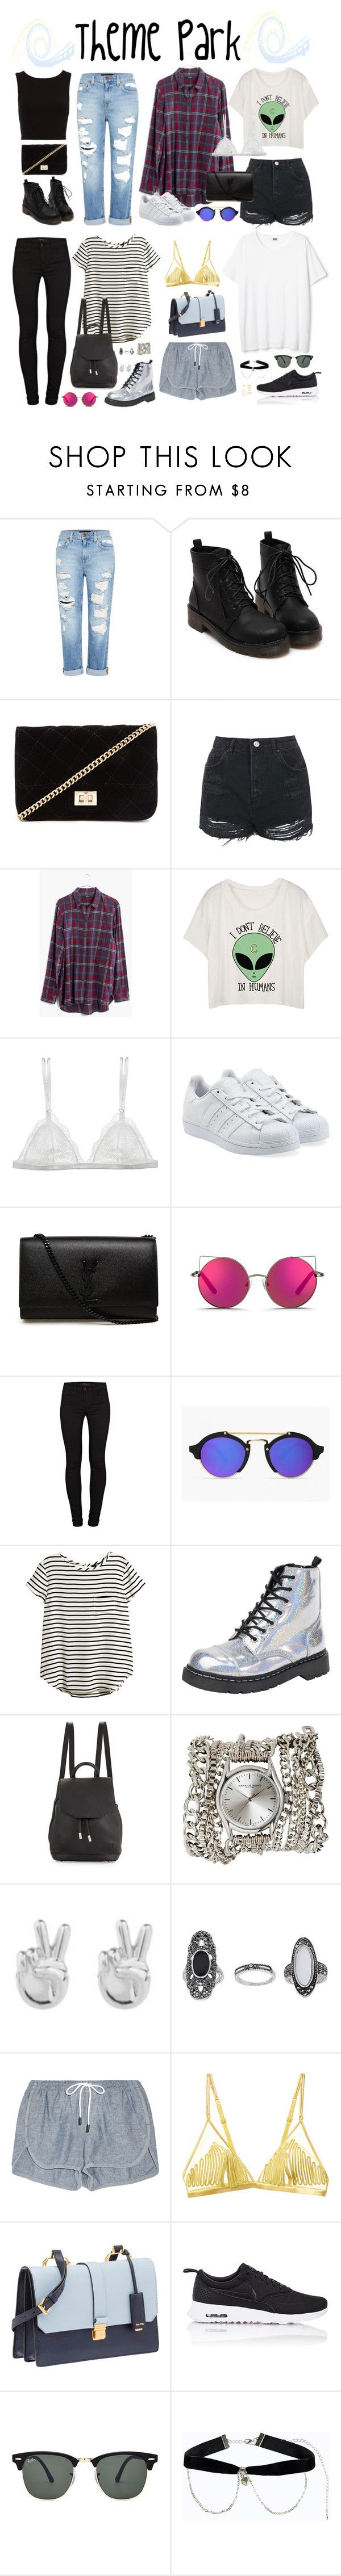 """Halsey-Inspired Theme Park Outfits"" by halseys-clothes ❤ liked on Polyvore featuring Genetic Denim, Forever 21, Topshop, Madewell, Curriculum Vitae, adidas Originals, Yves Saint Laurent, Matthew Williamson, J Brand and H&M"